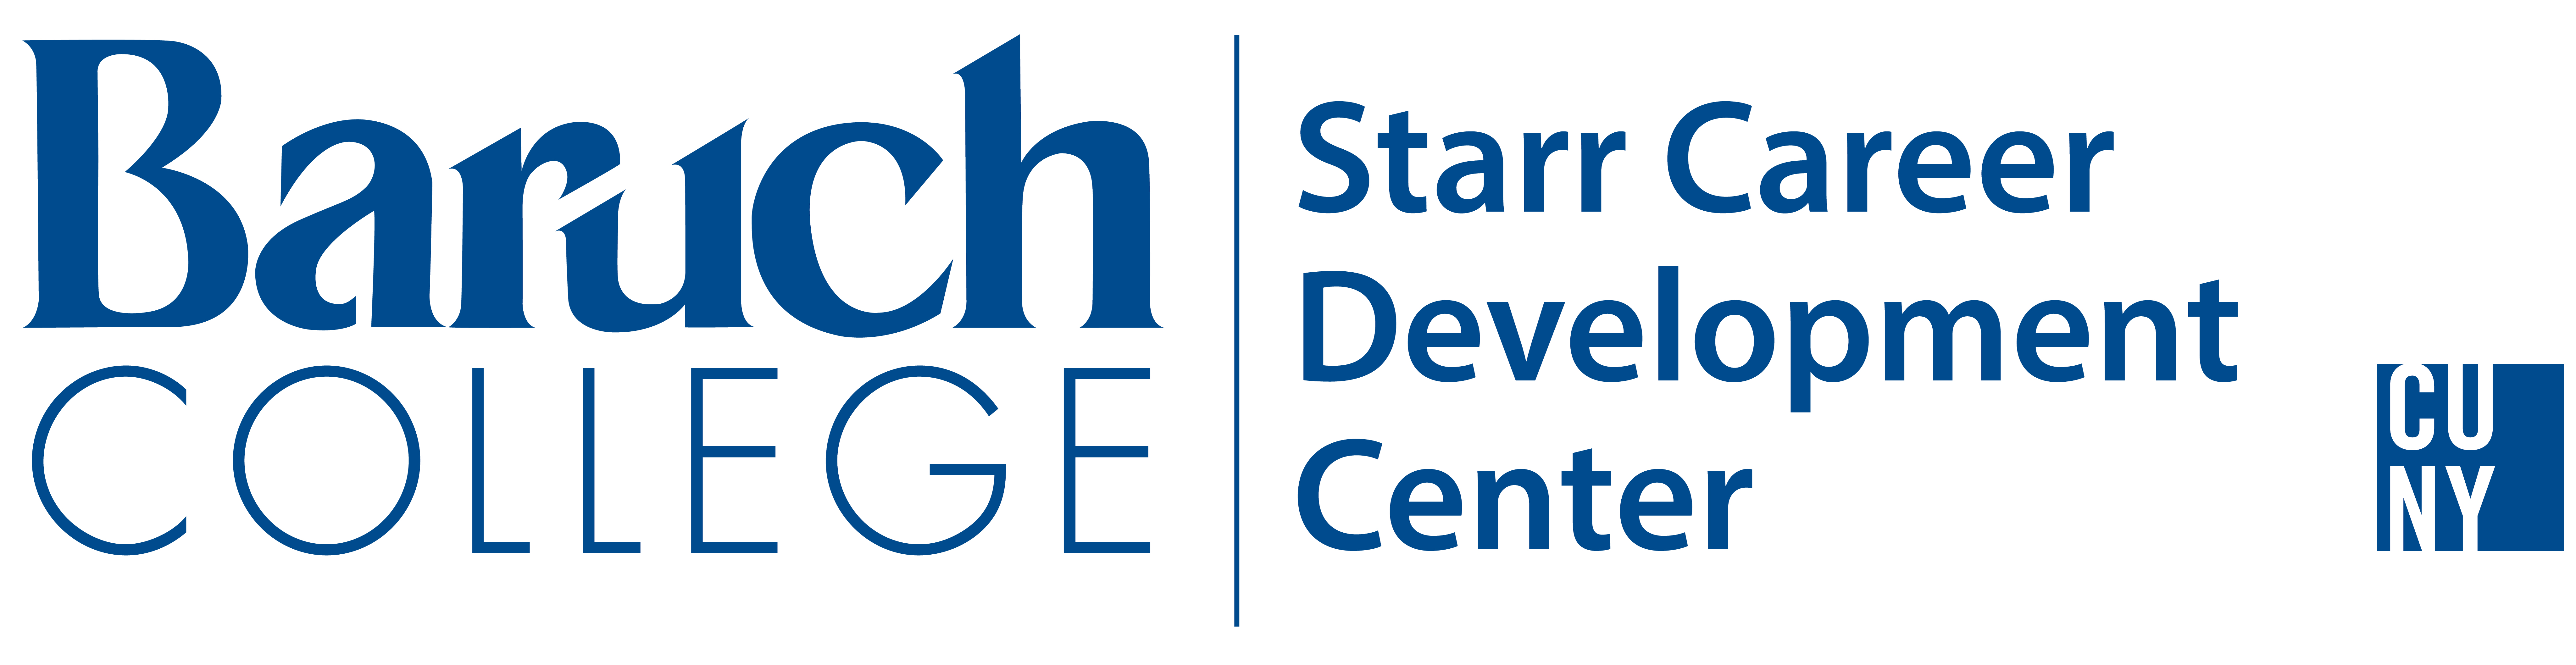 starr career development center baruch college fund starr career development center